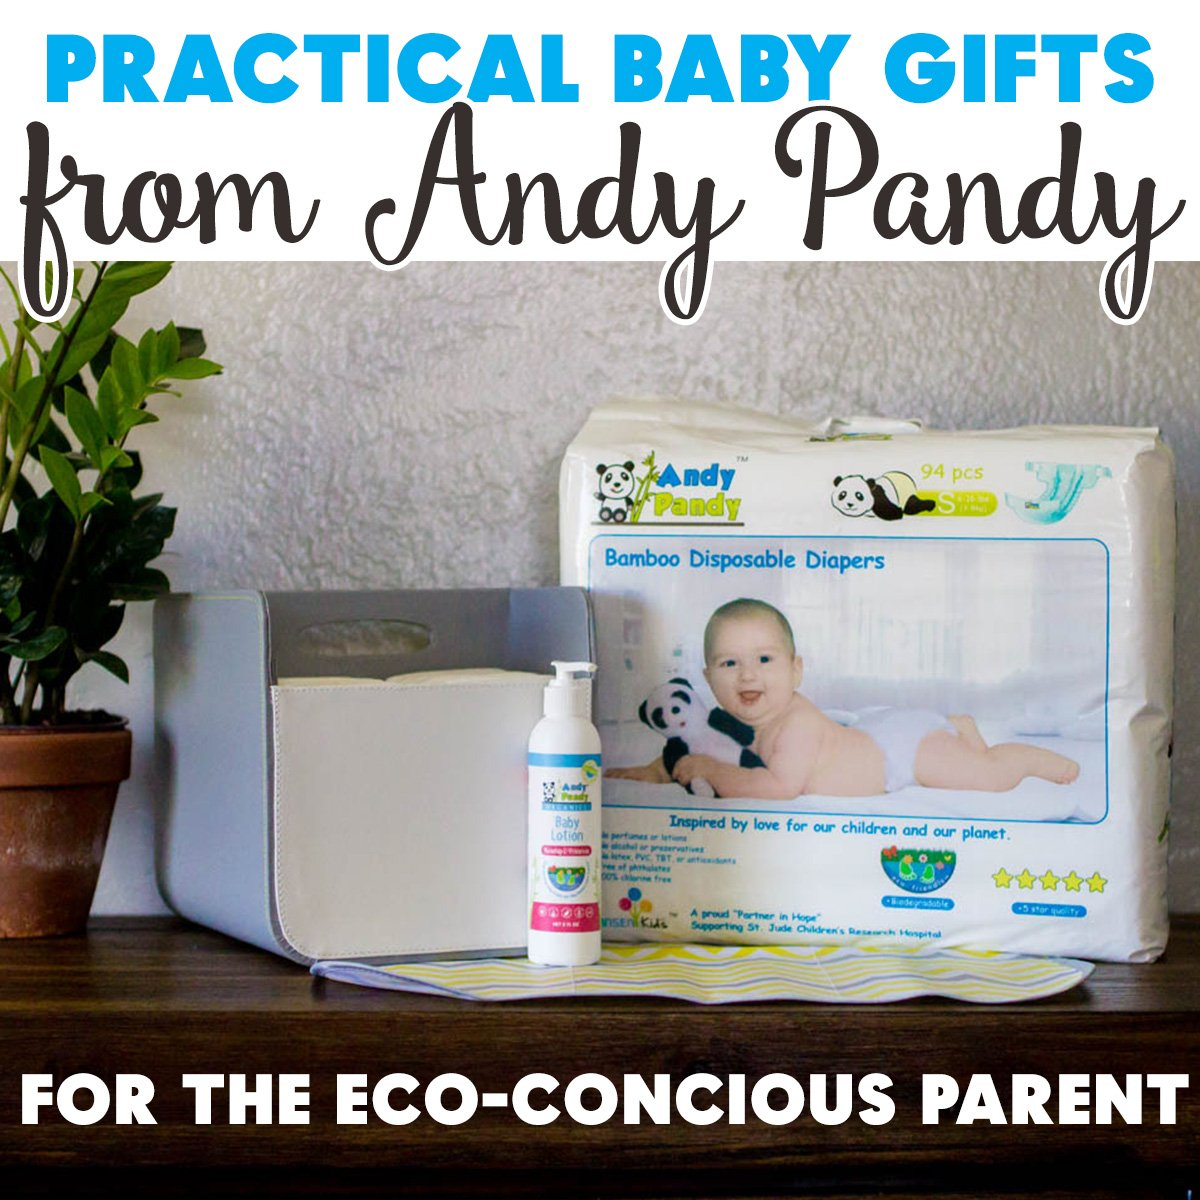 Baby Gifts For The Parents : Practical baby gifts from andy pandy for the eco conscious